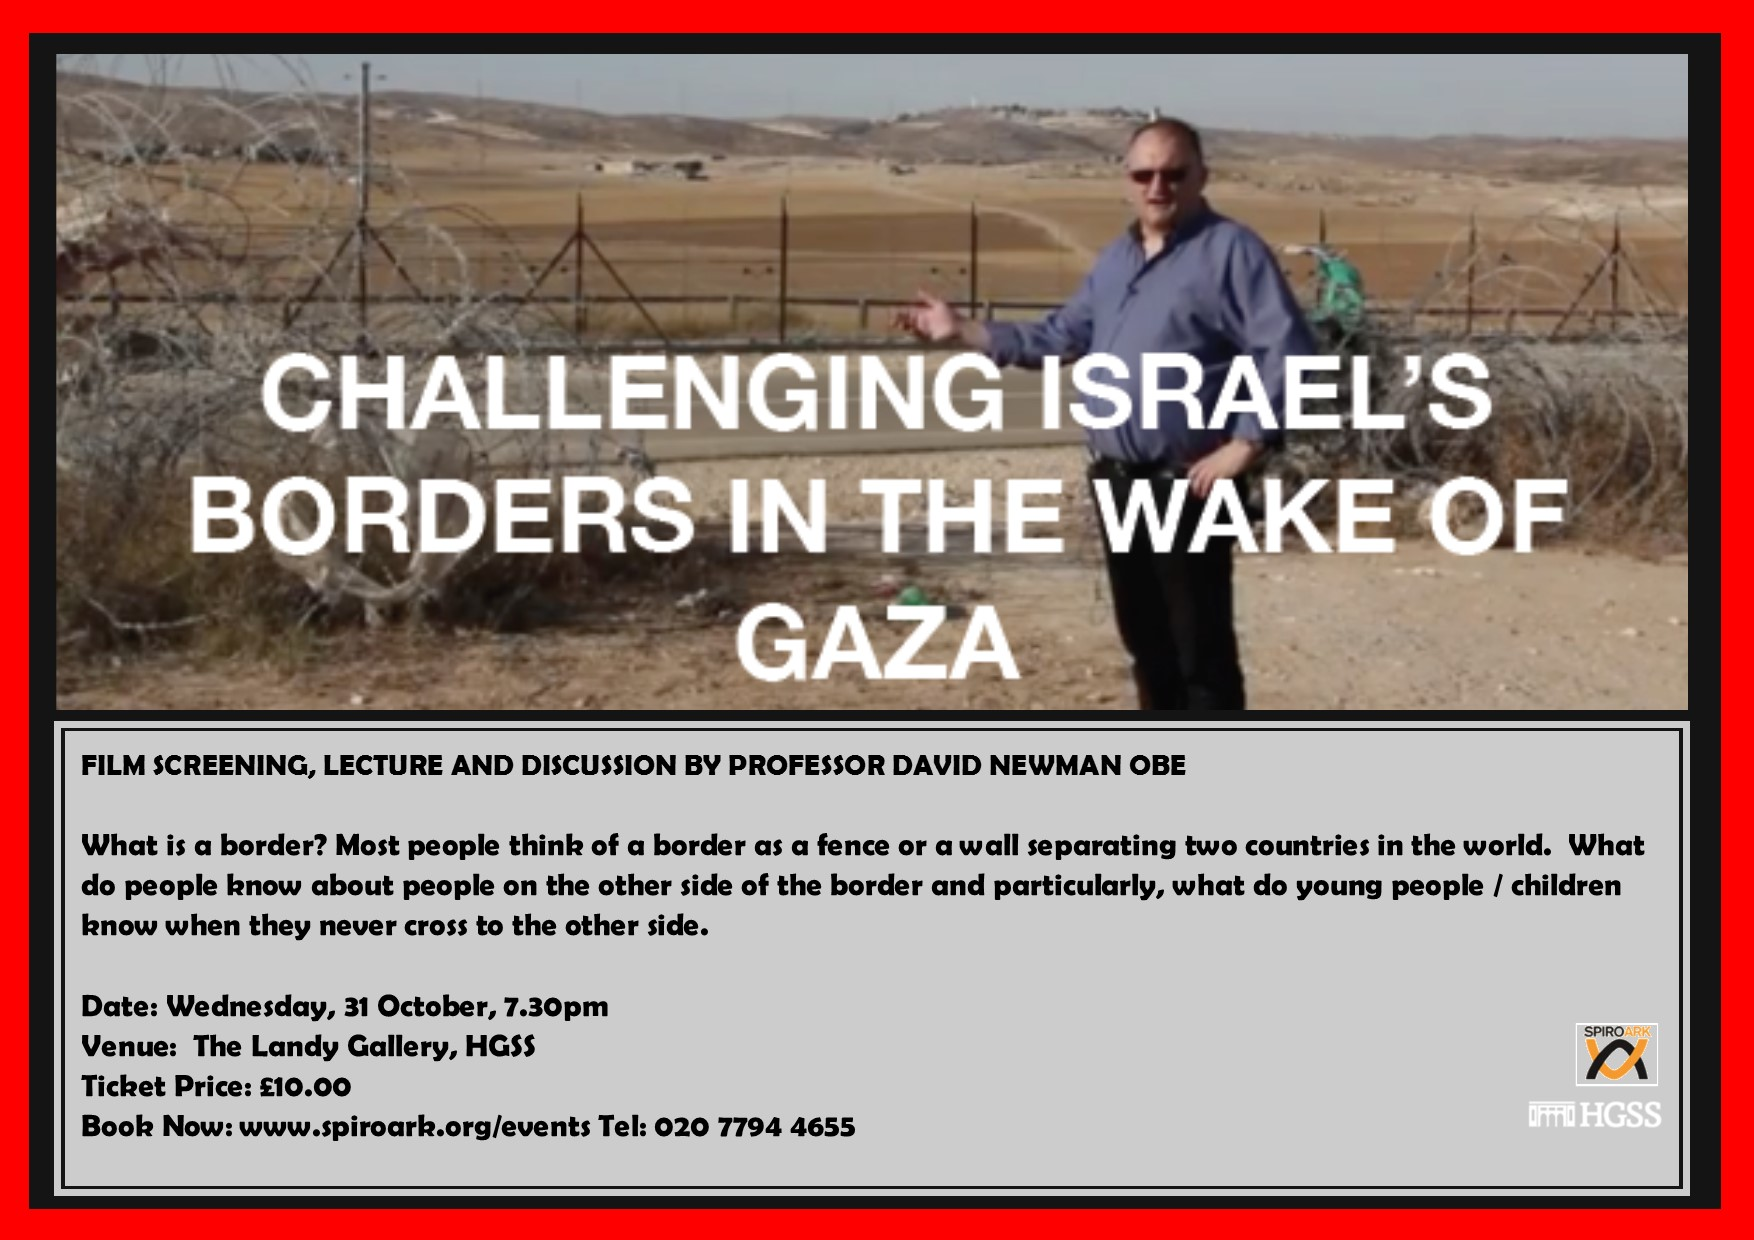 Spiro Ark - Challenging Israel's Borders In the Wake of Gaza @ The Landy Gallery